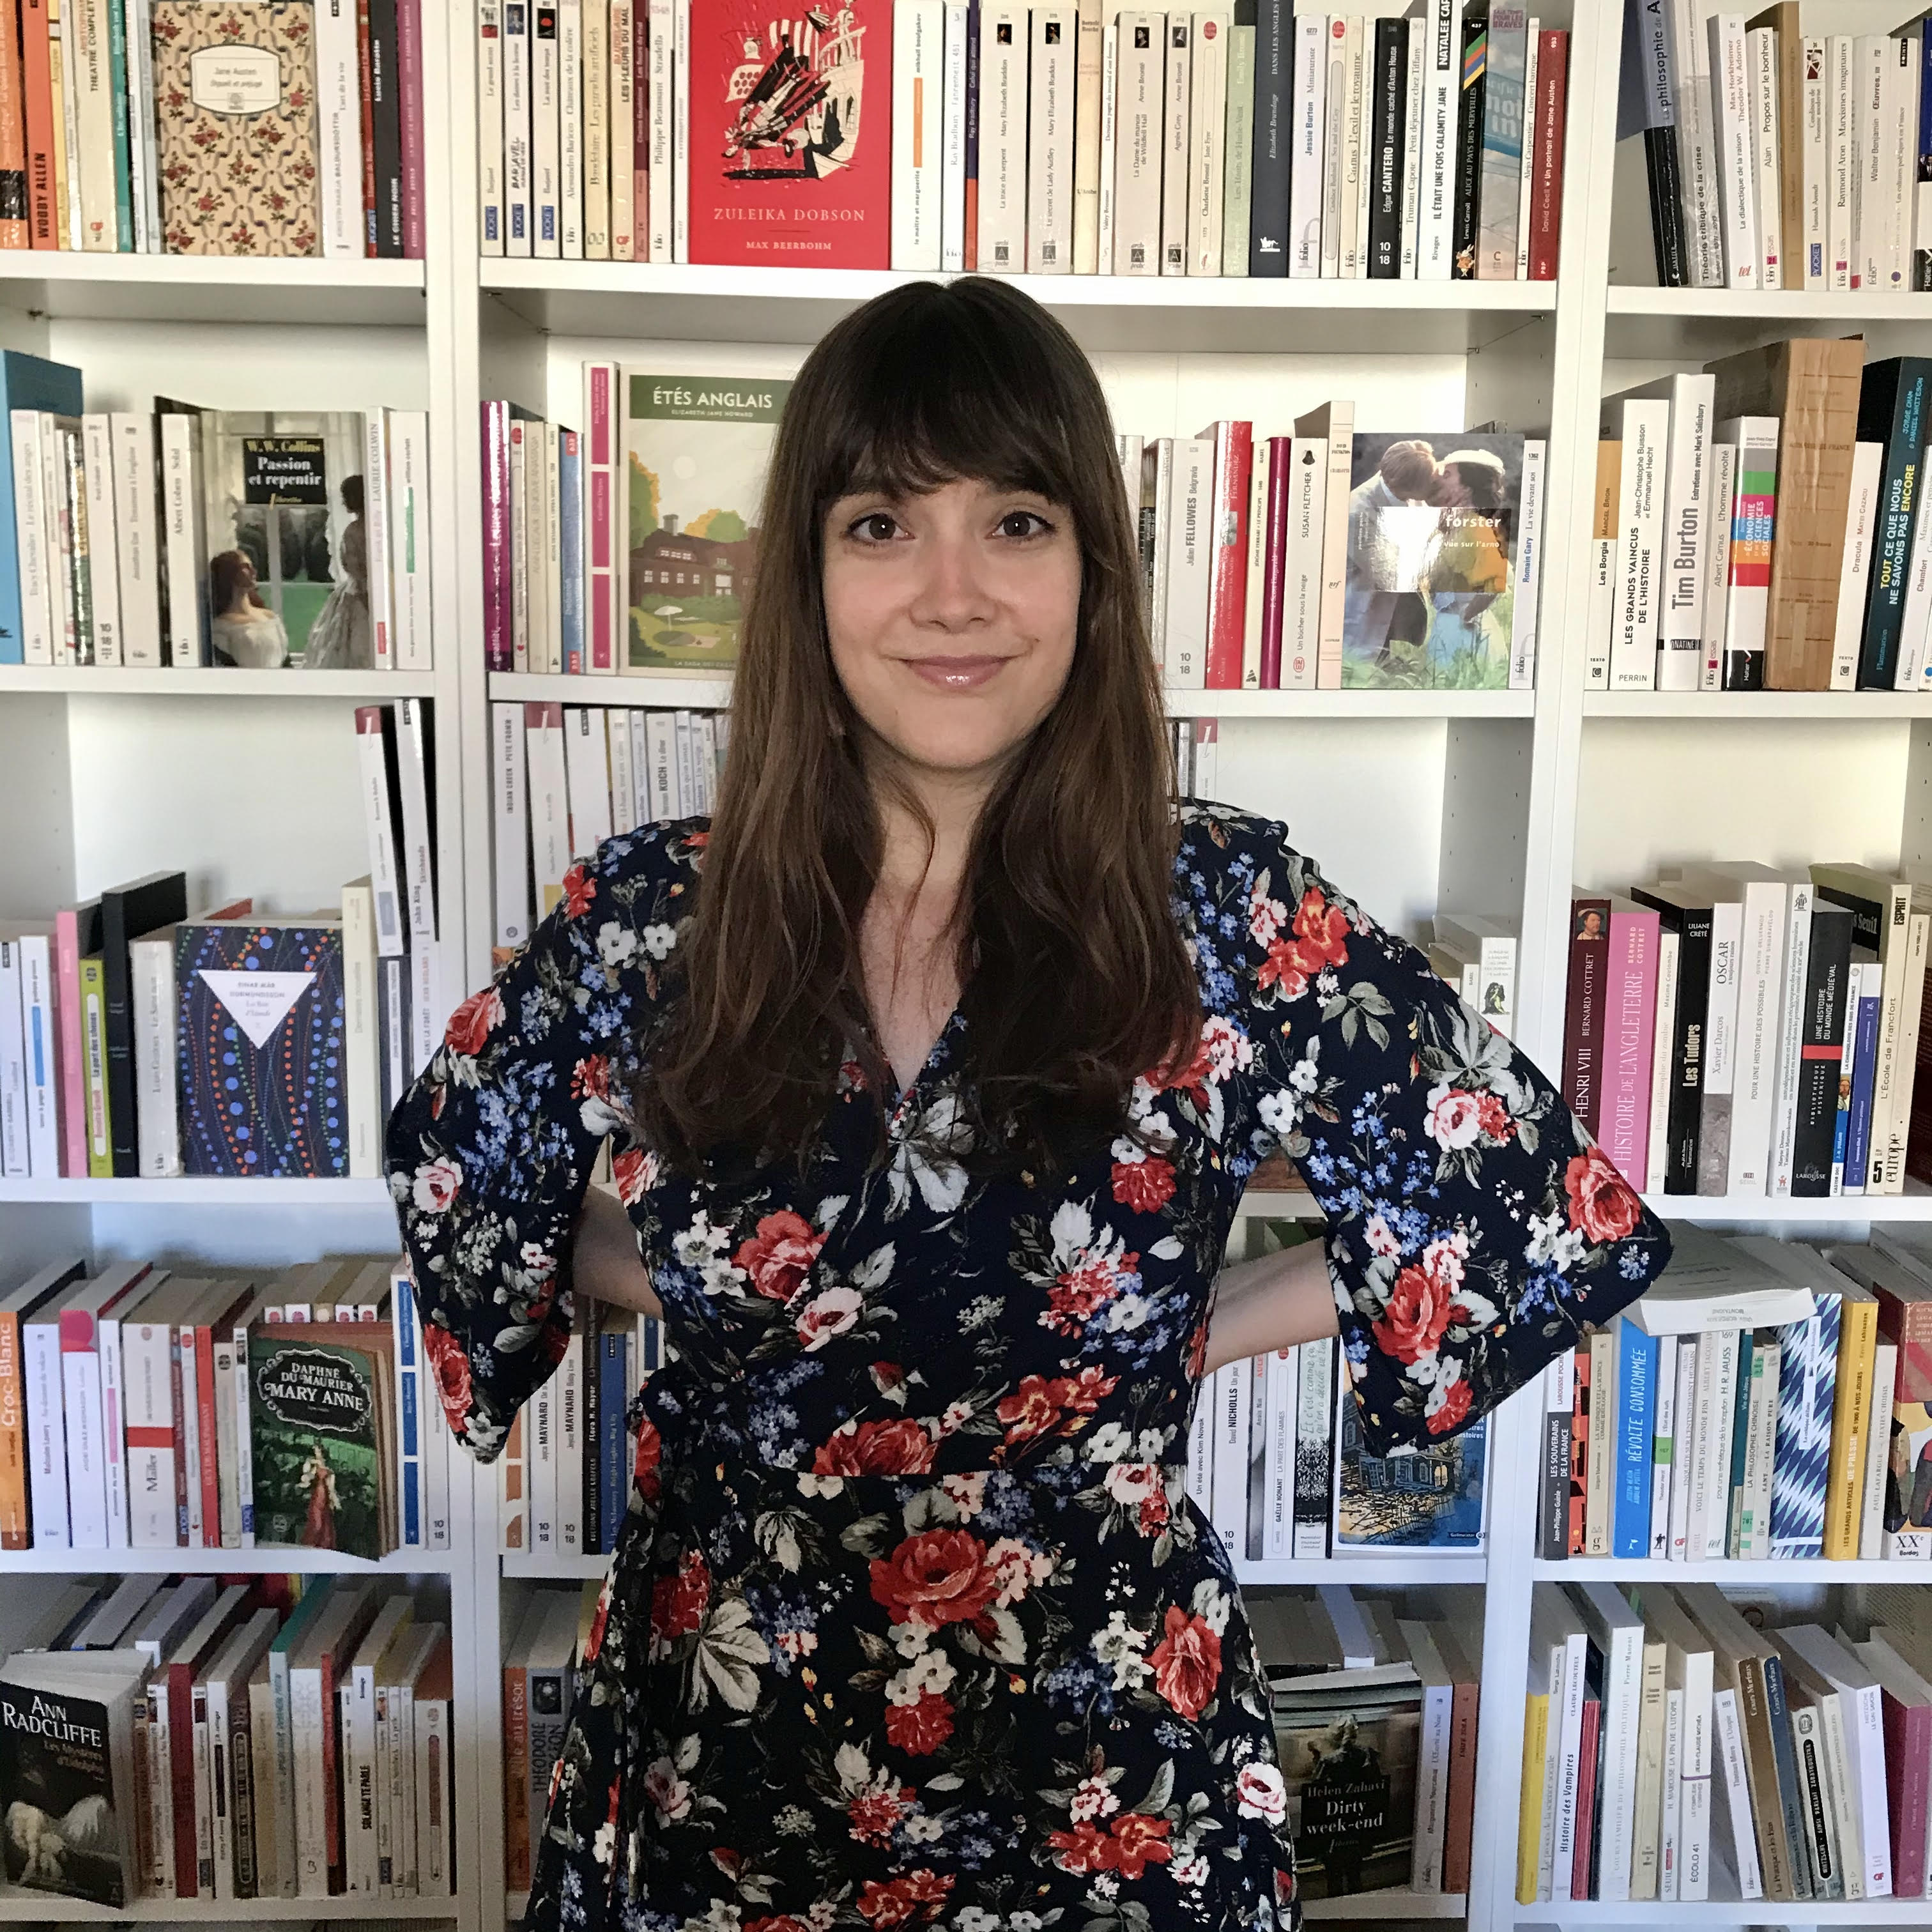 Camille K., Libraire Kube